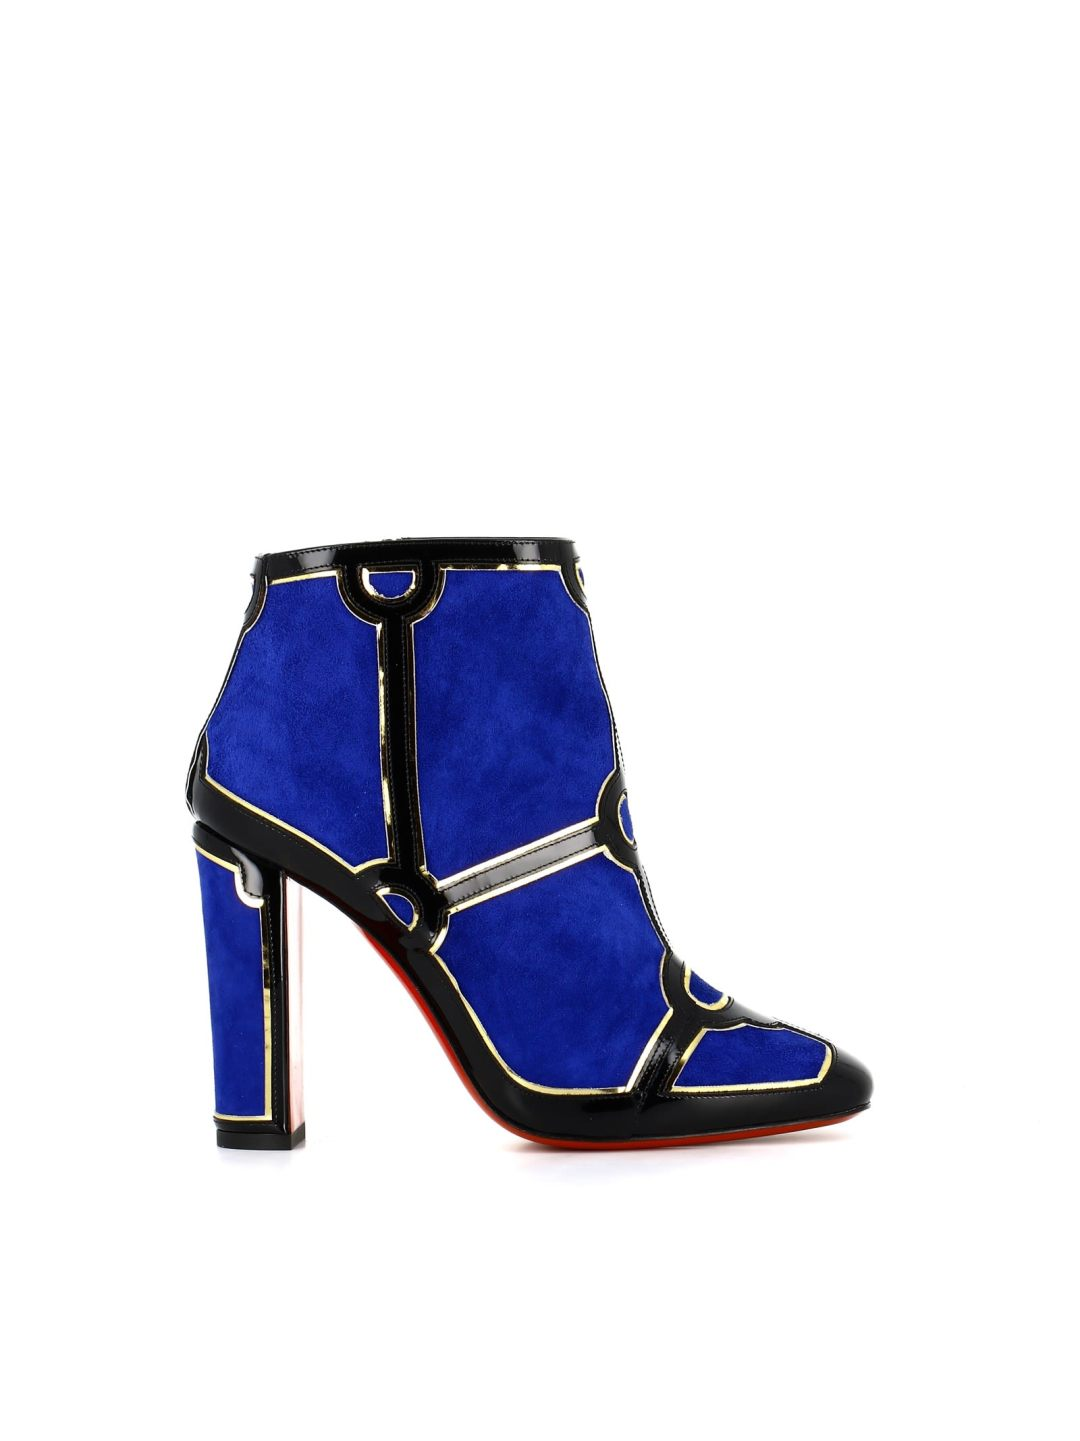 """f9ab8a53df Christian Louboutin Ankle Boot """"interior Boot 100"""" – Italist.com US –  $1,203.70"""